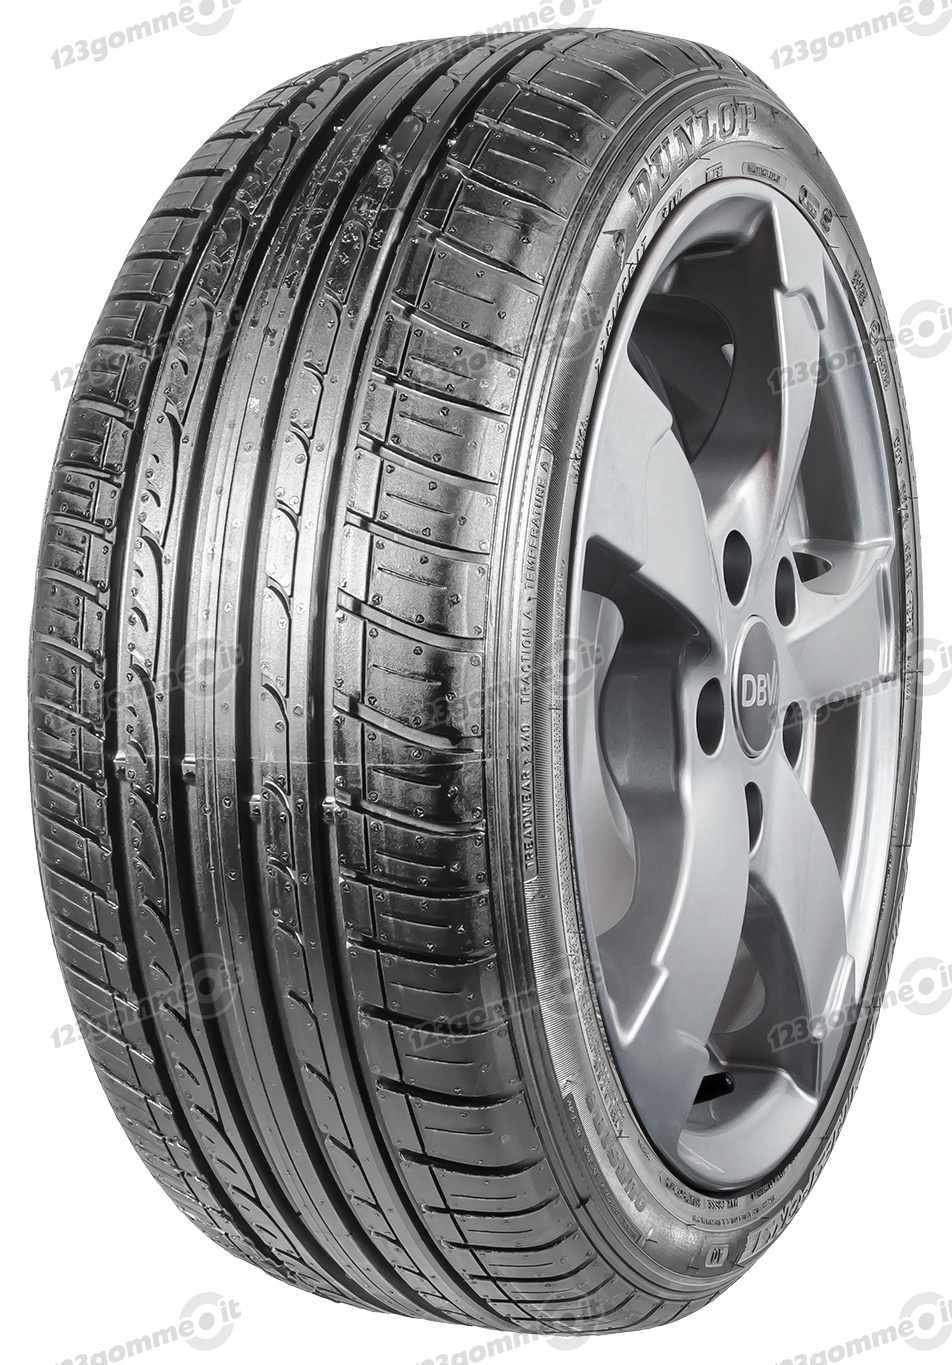 195/65 R15 91H SP Sport Fast Response MO  SP Sport Fast Response MO